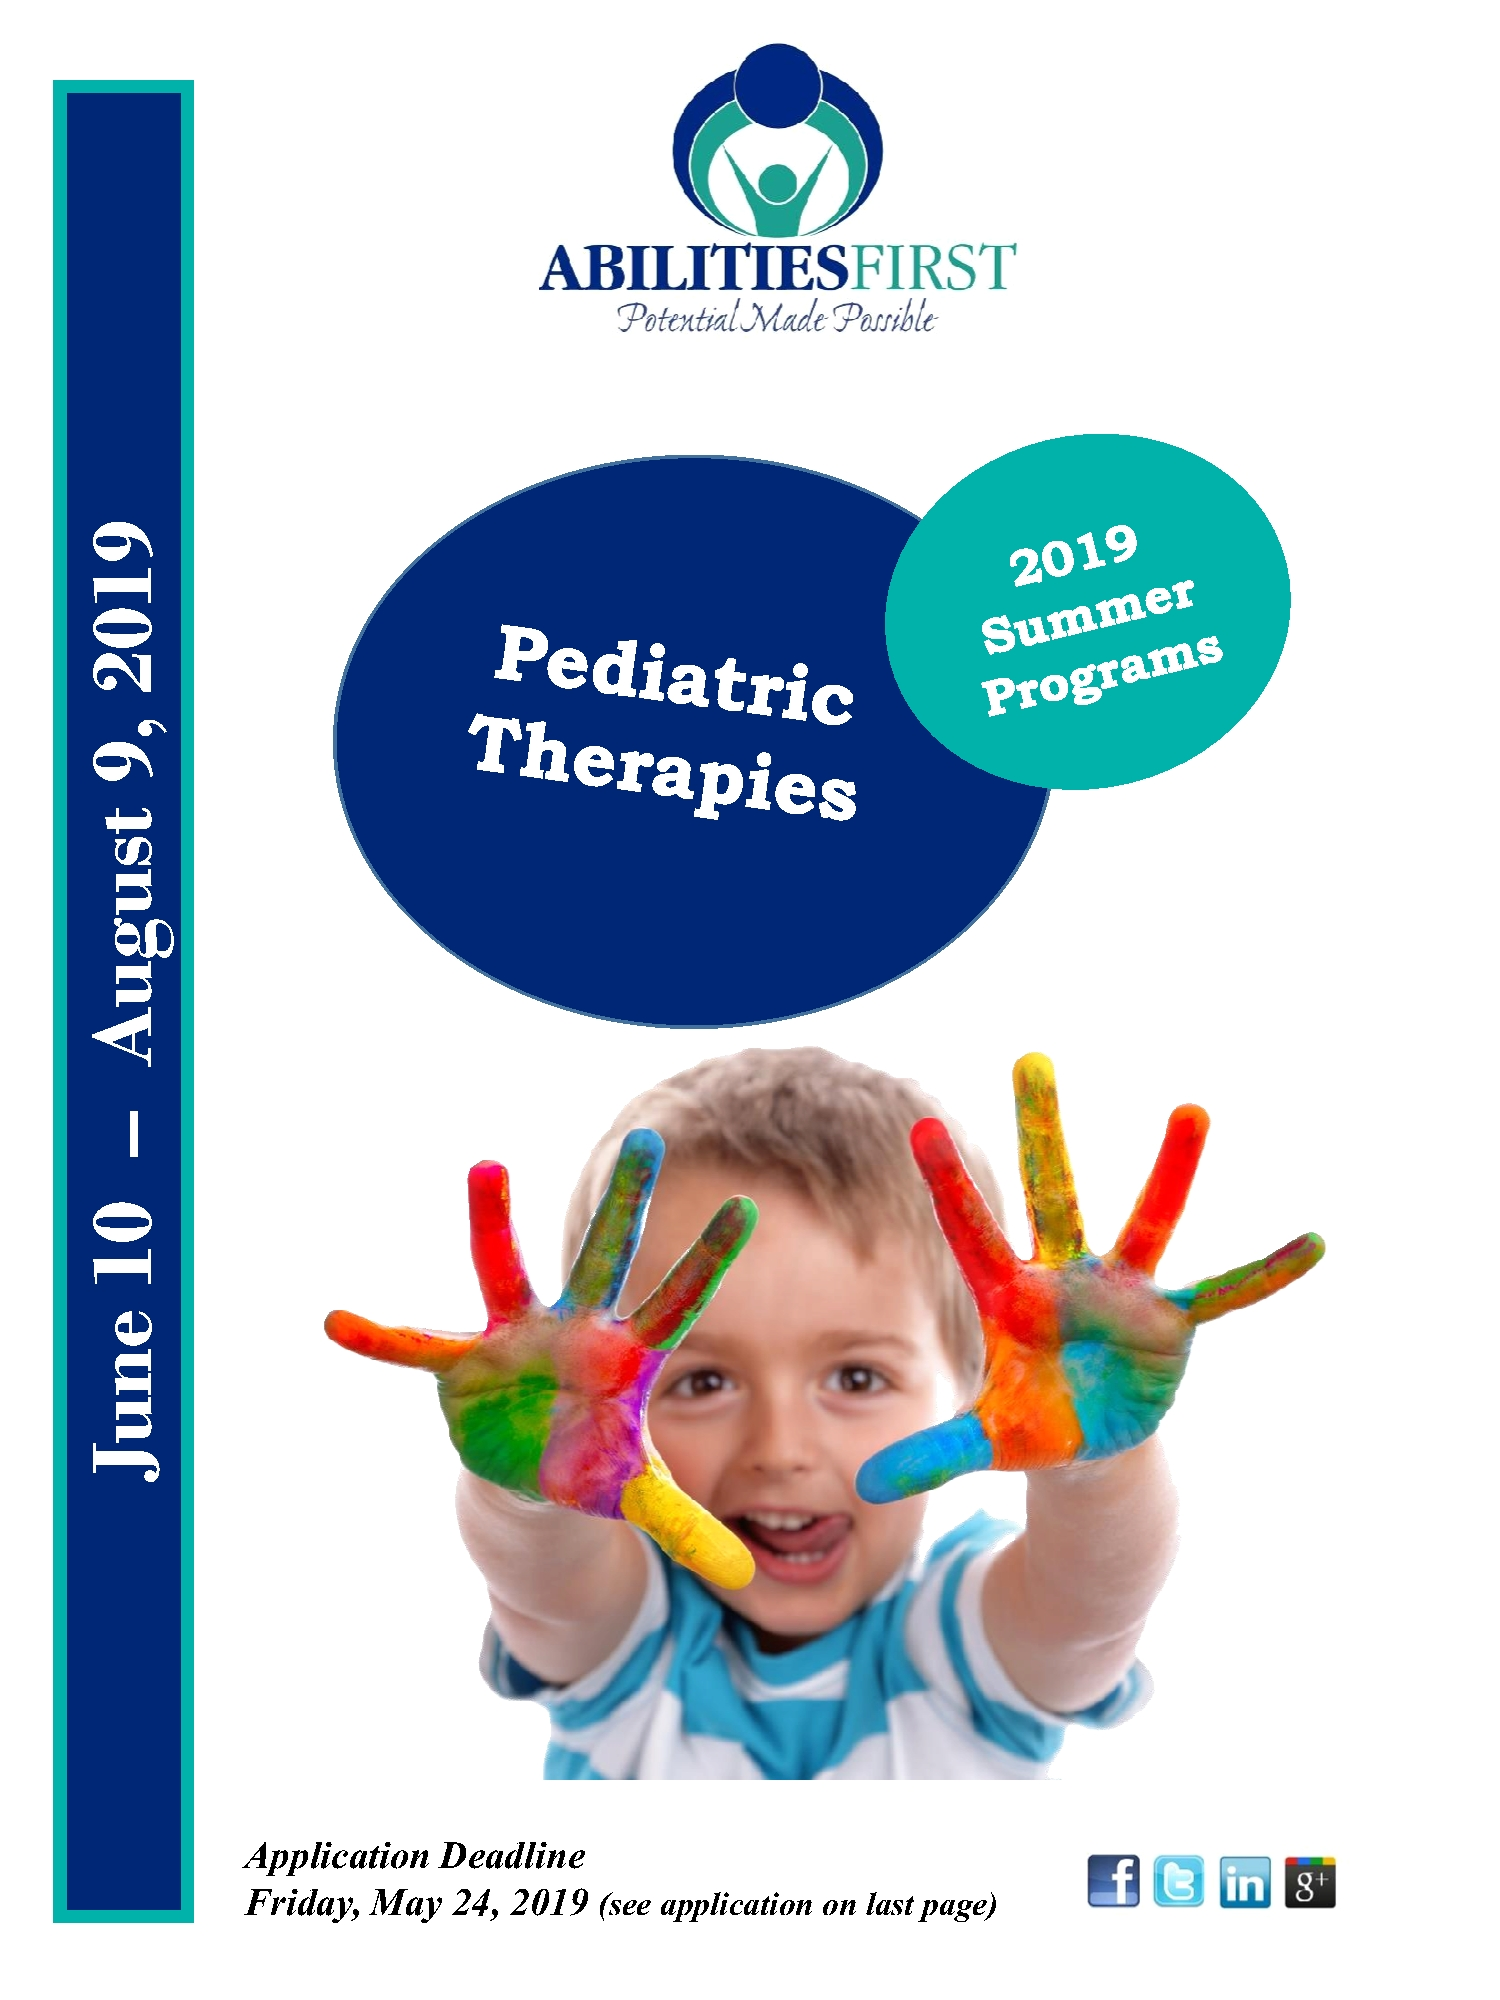 2019 Summer Programs Pediatric Therapies